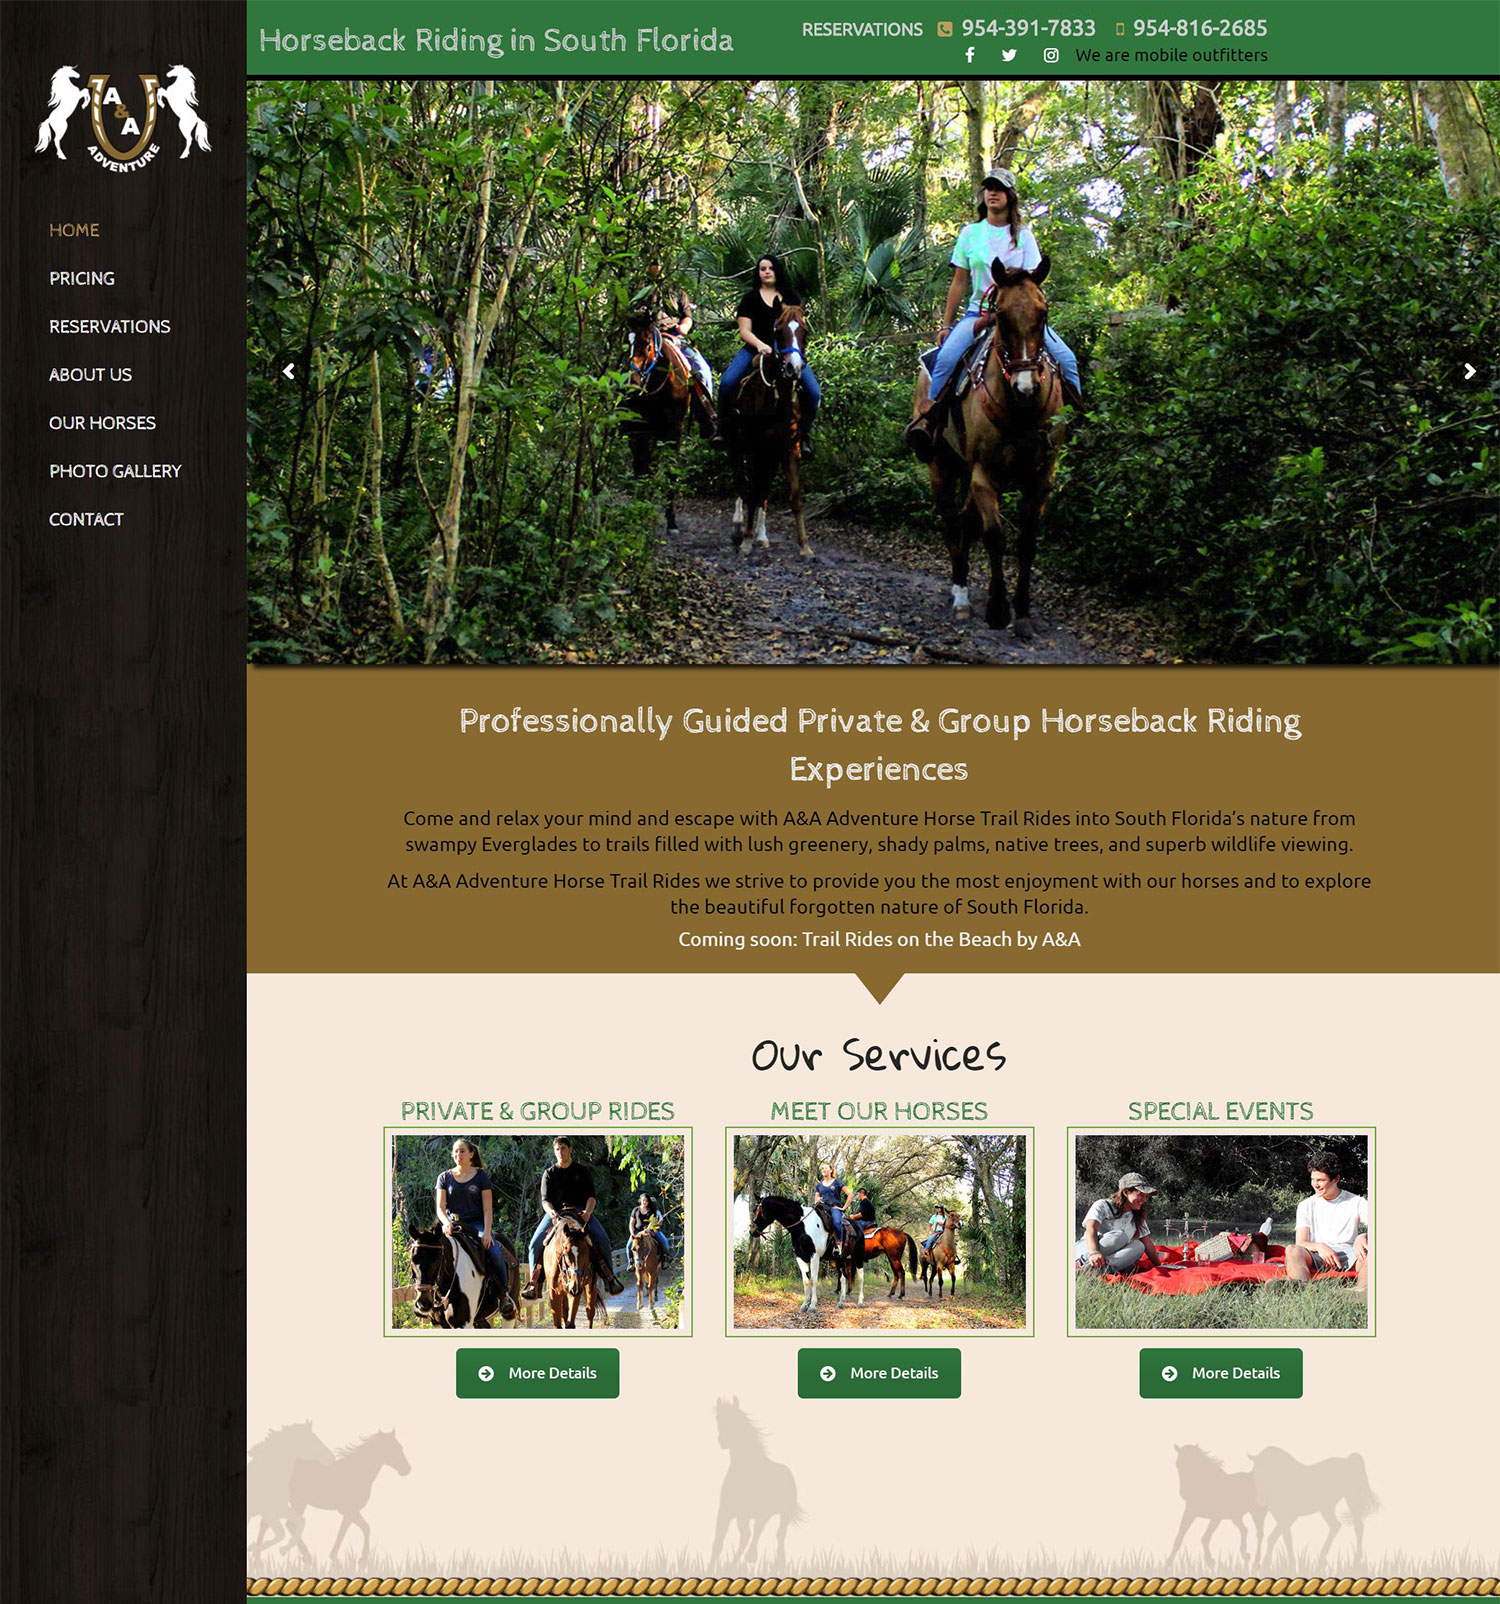 A&A-Adventure-Horse-Trail-Rides.jpg